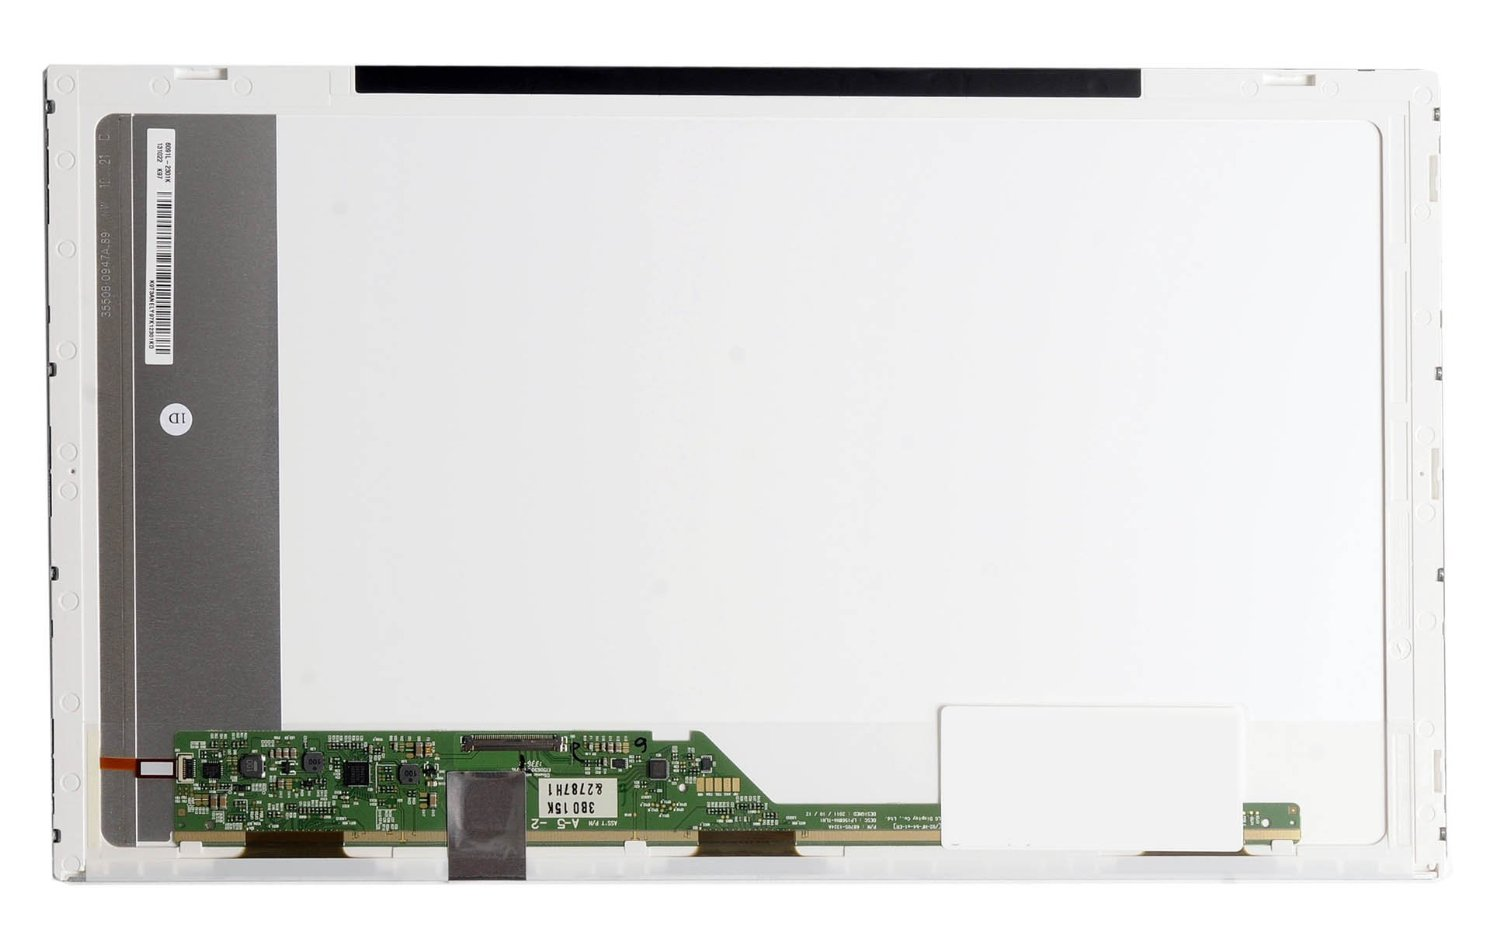 For SAMSUNG LTN156AT09-H01, LTN156AT09-H02, LTN156AT09-H03 LAPTOP LCD REPLACEMENT SCREEN 15.6 WXGA HD LED original a1706 a1708 lcd back cover for macbook pro13 2016 a1706 a1708 laptop replacement